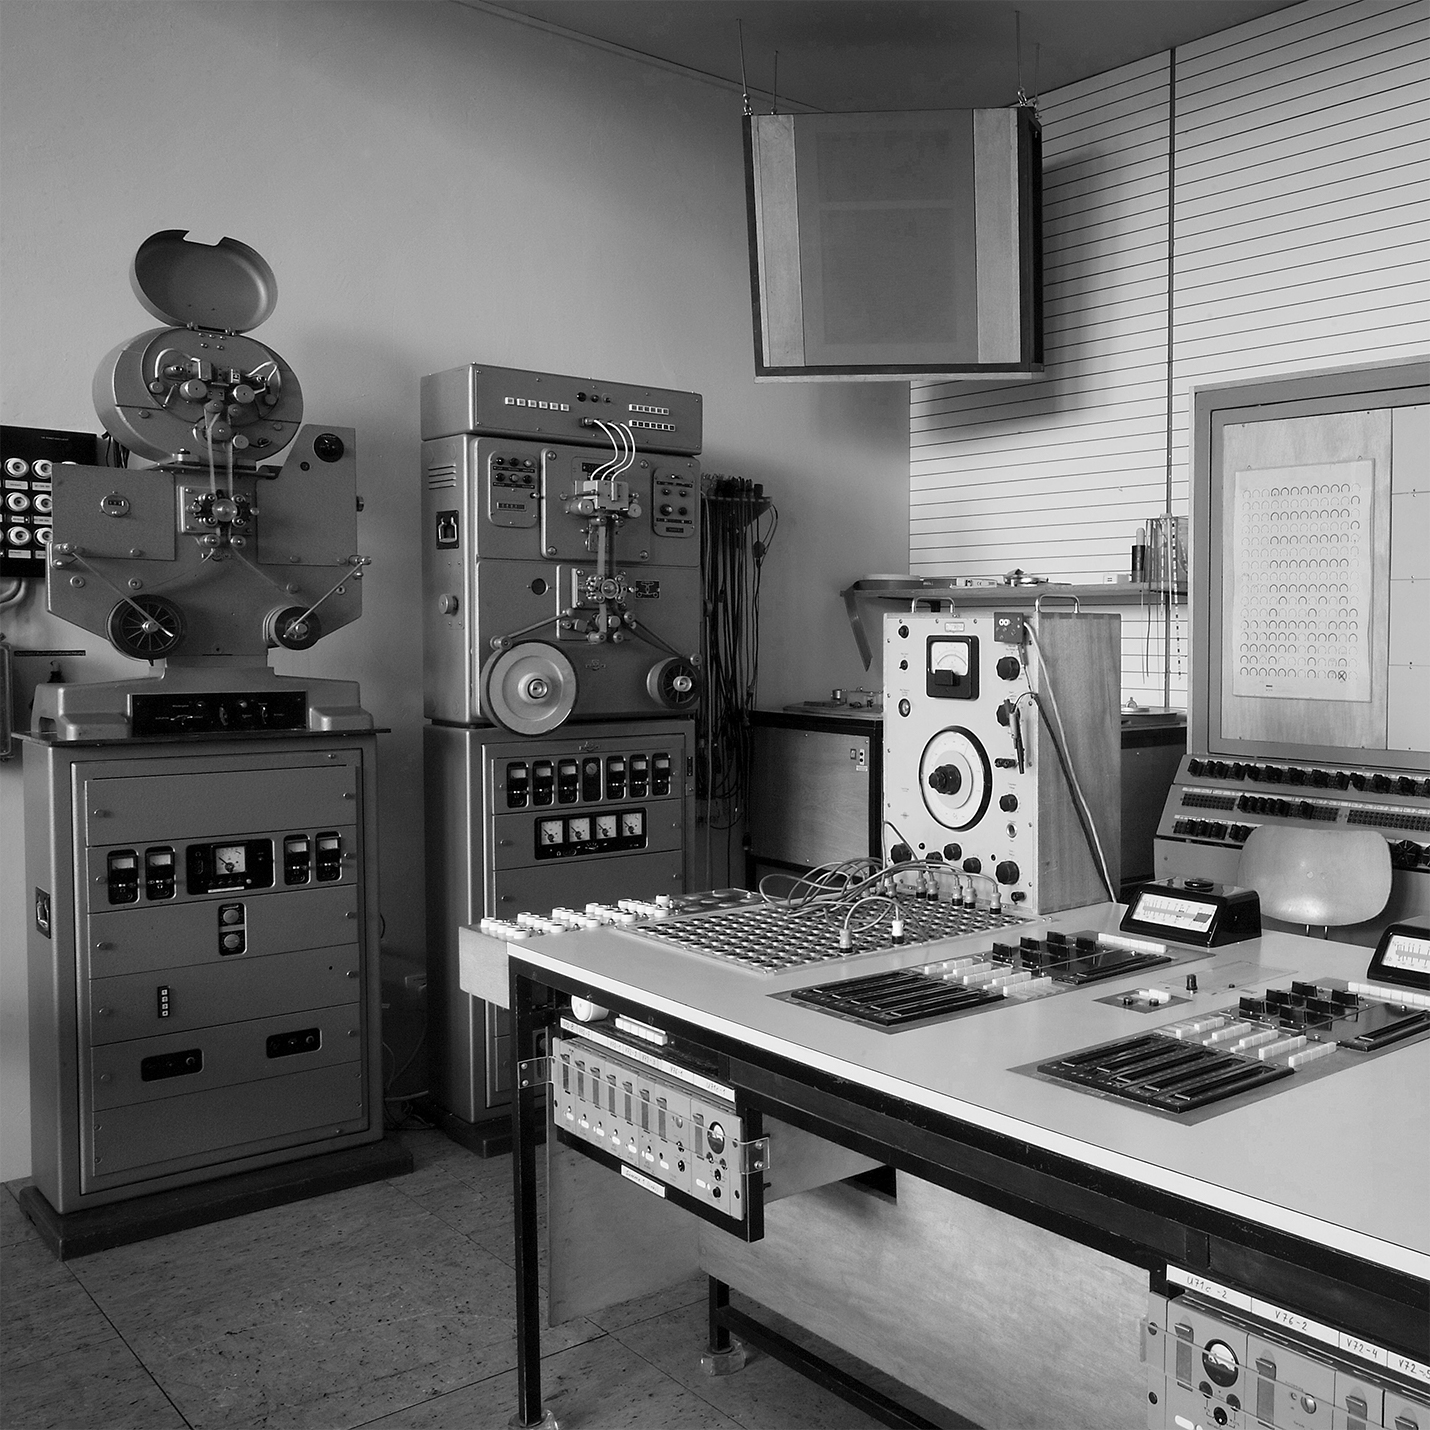 Details of a Siemens electronic music recording studio, 1955.